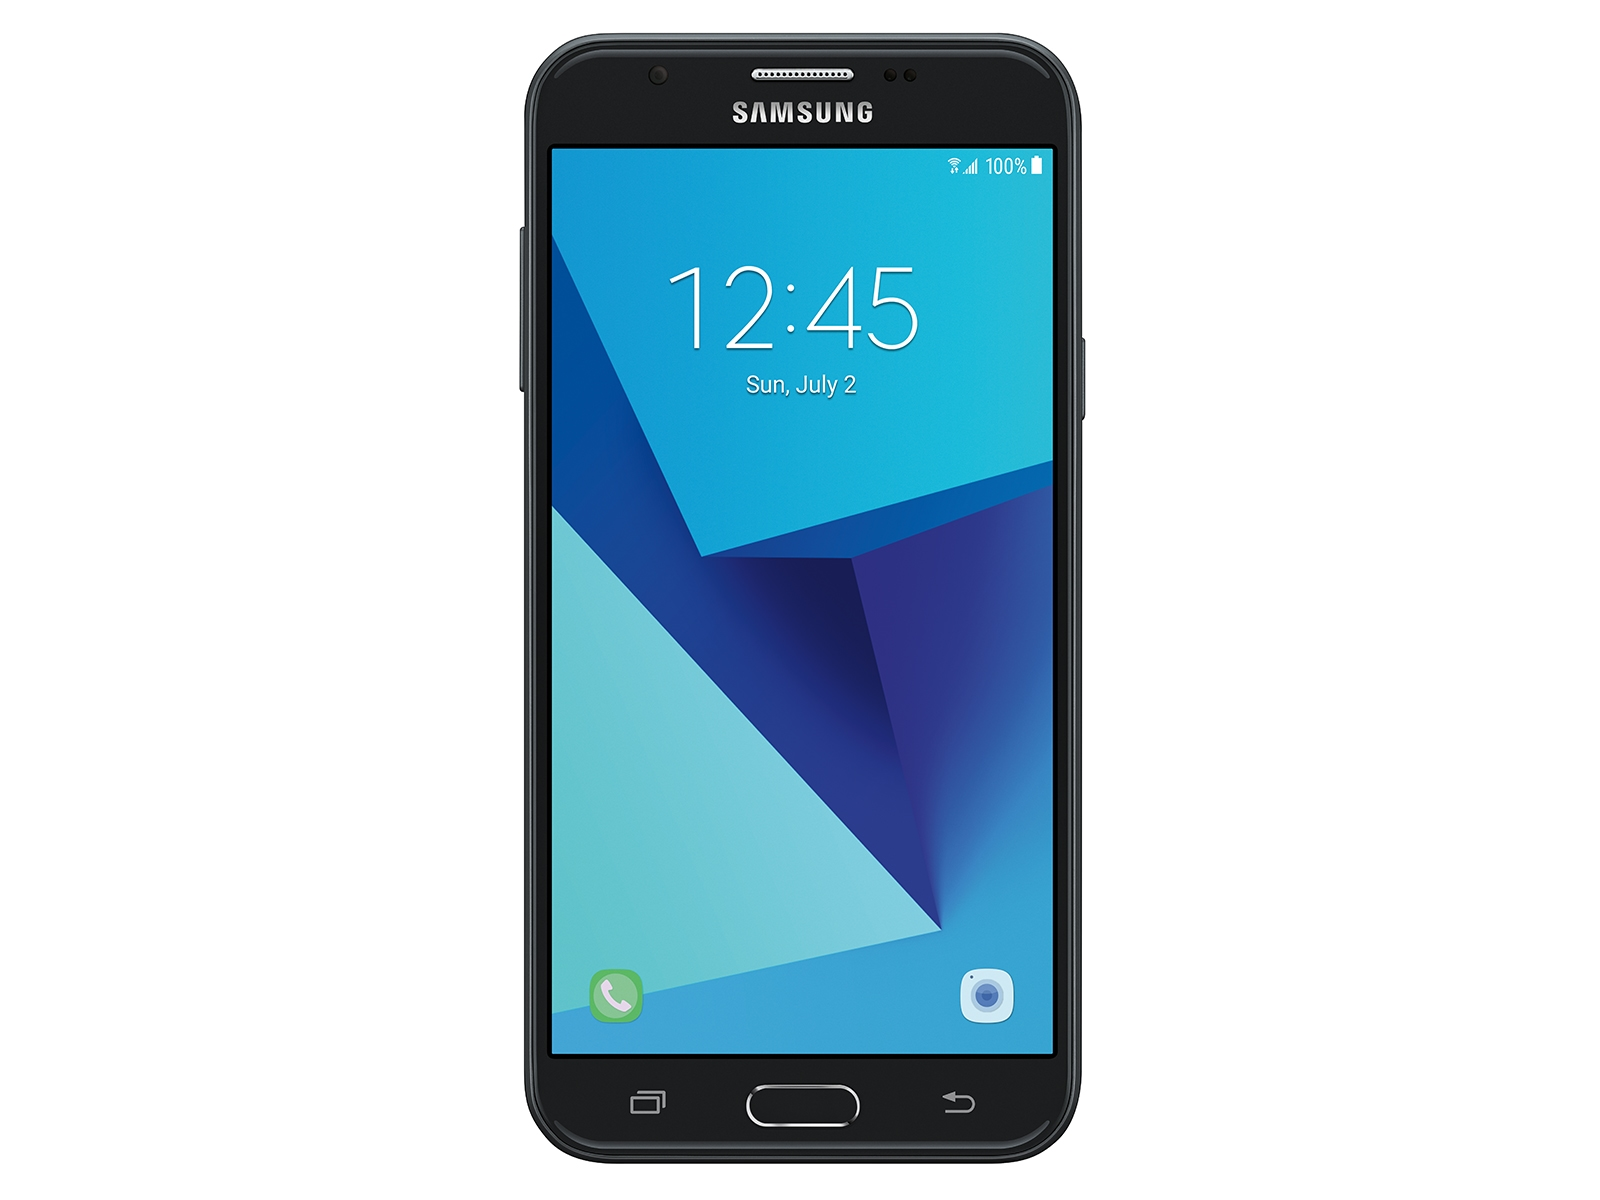 Samsung Galaxy J7 16gb Unlocked Black Phones Sm J727uzkaxaa Samsung Us